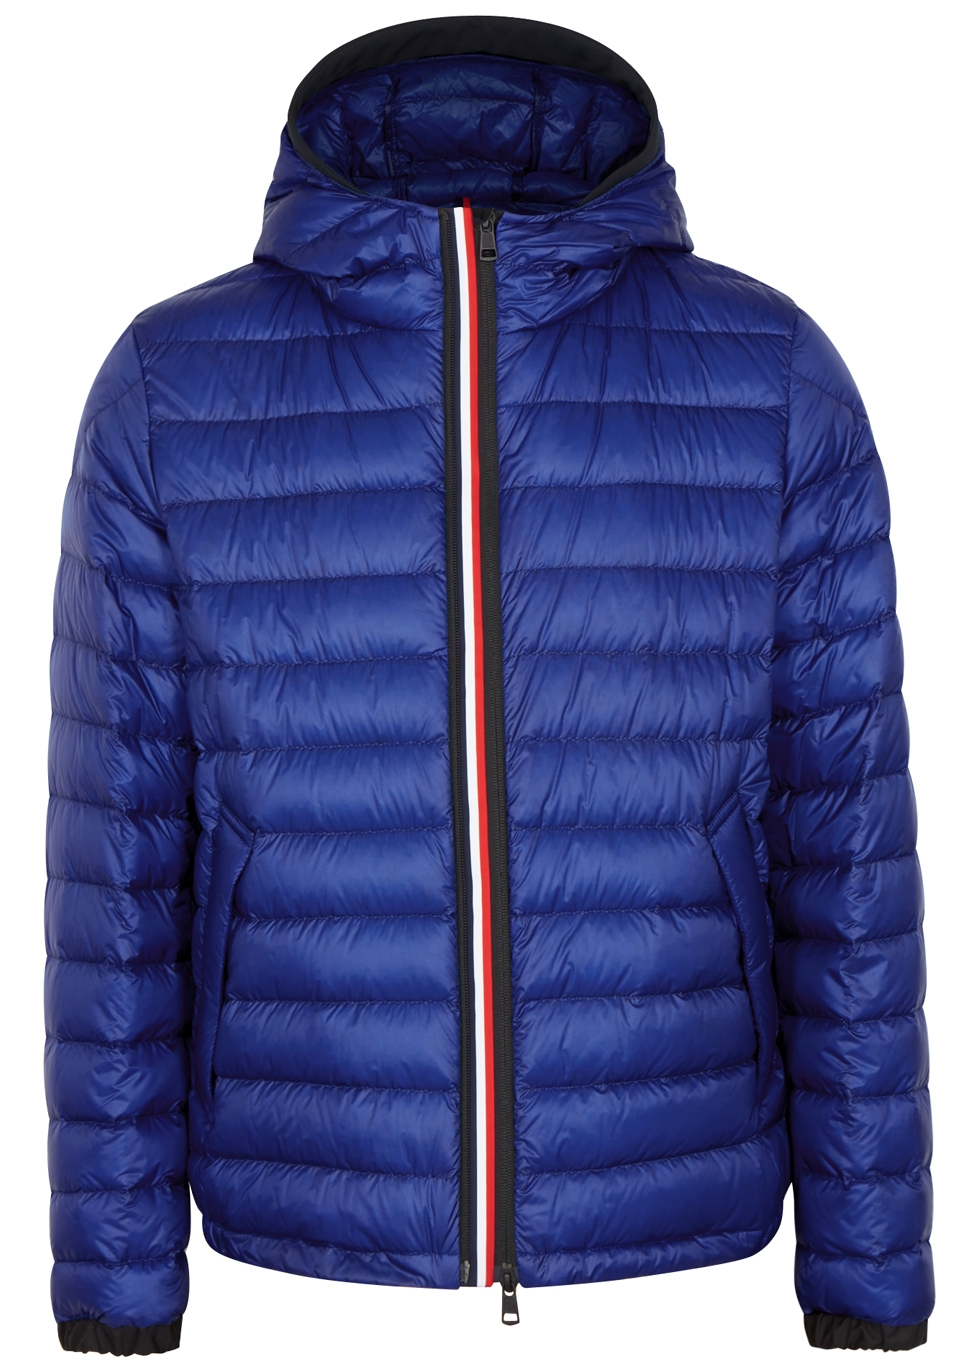 Morvan quilted shell jacket - Moncler